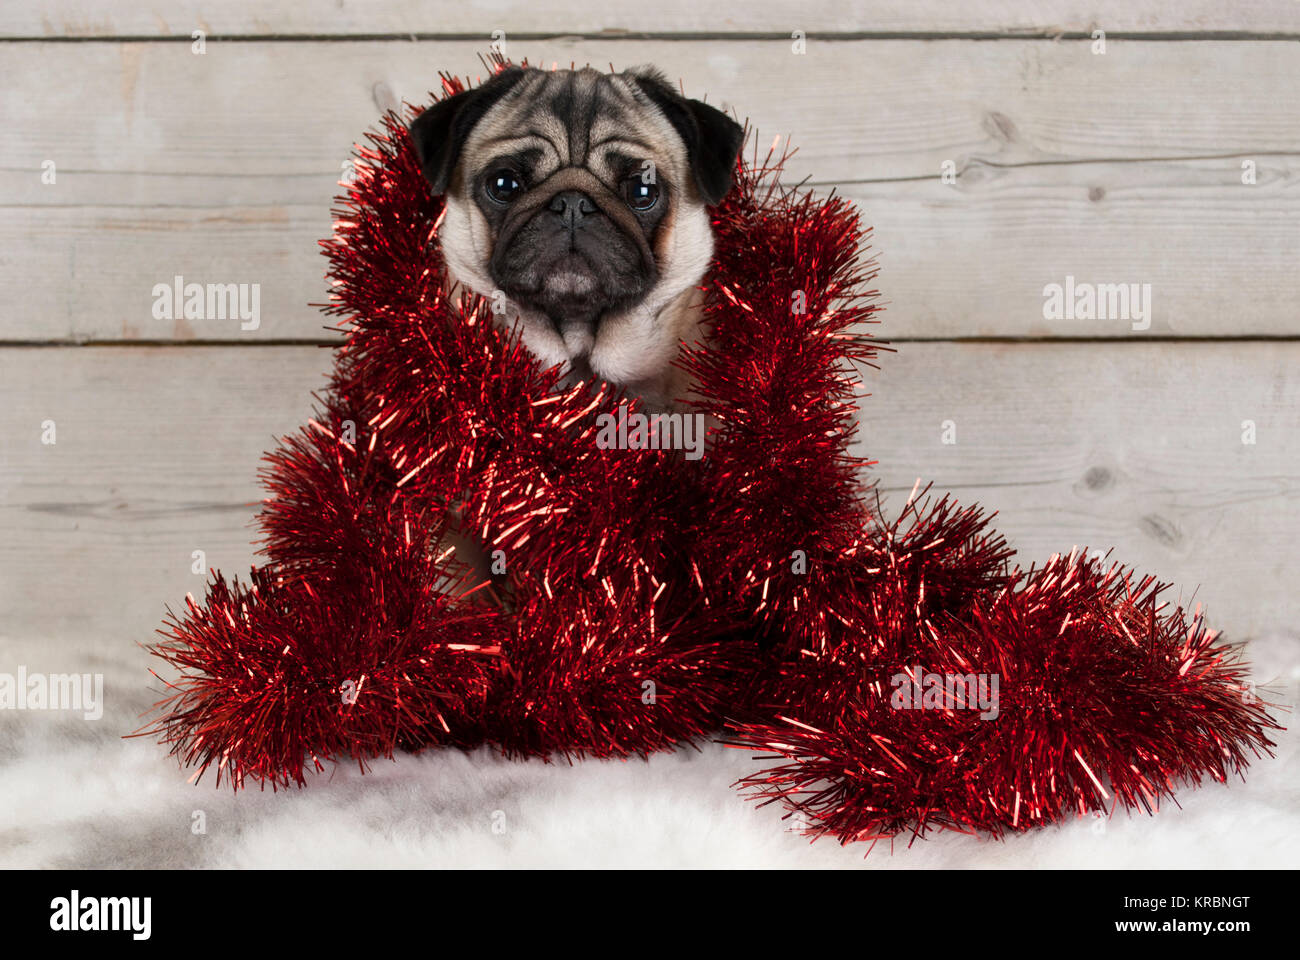 cute Christmas pug puppy dog, sitting down wrapped  in red tinsel on sheepskin, with vintage wooden background - Stock Image